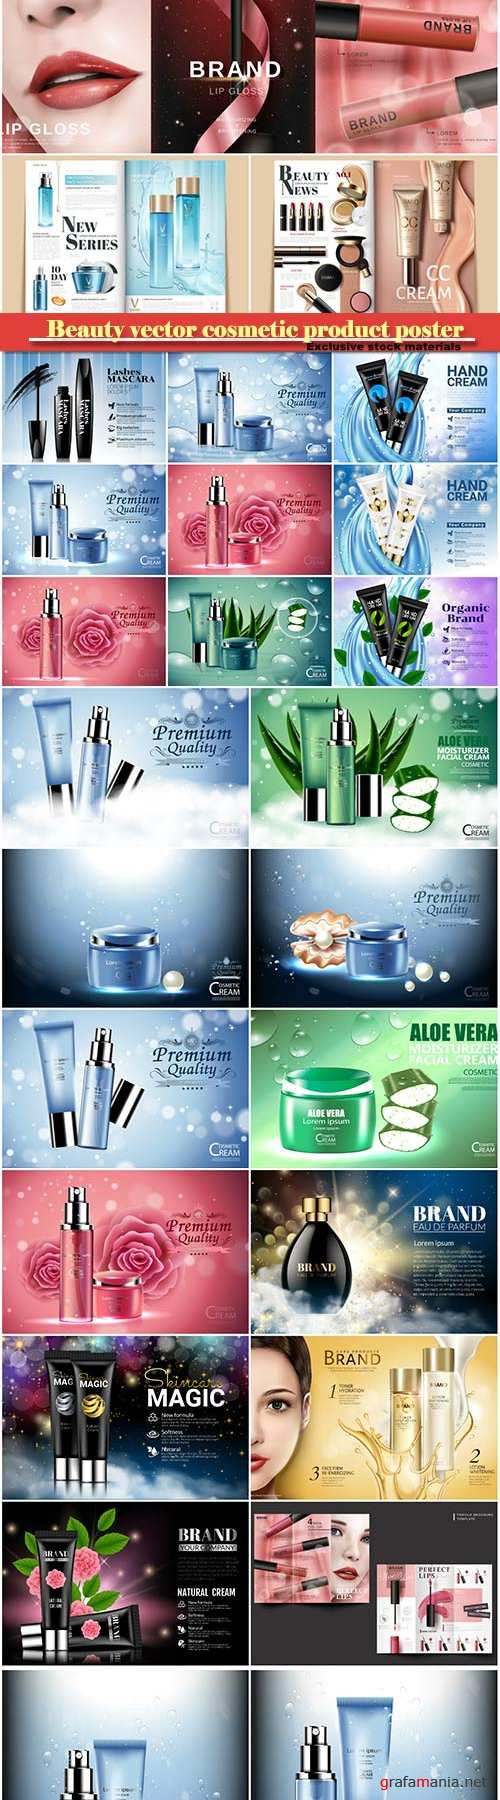 Beauty vector cosmetic product poster